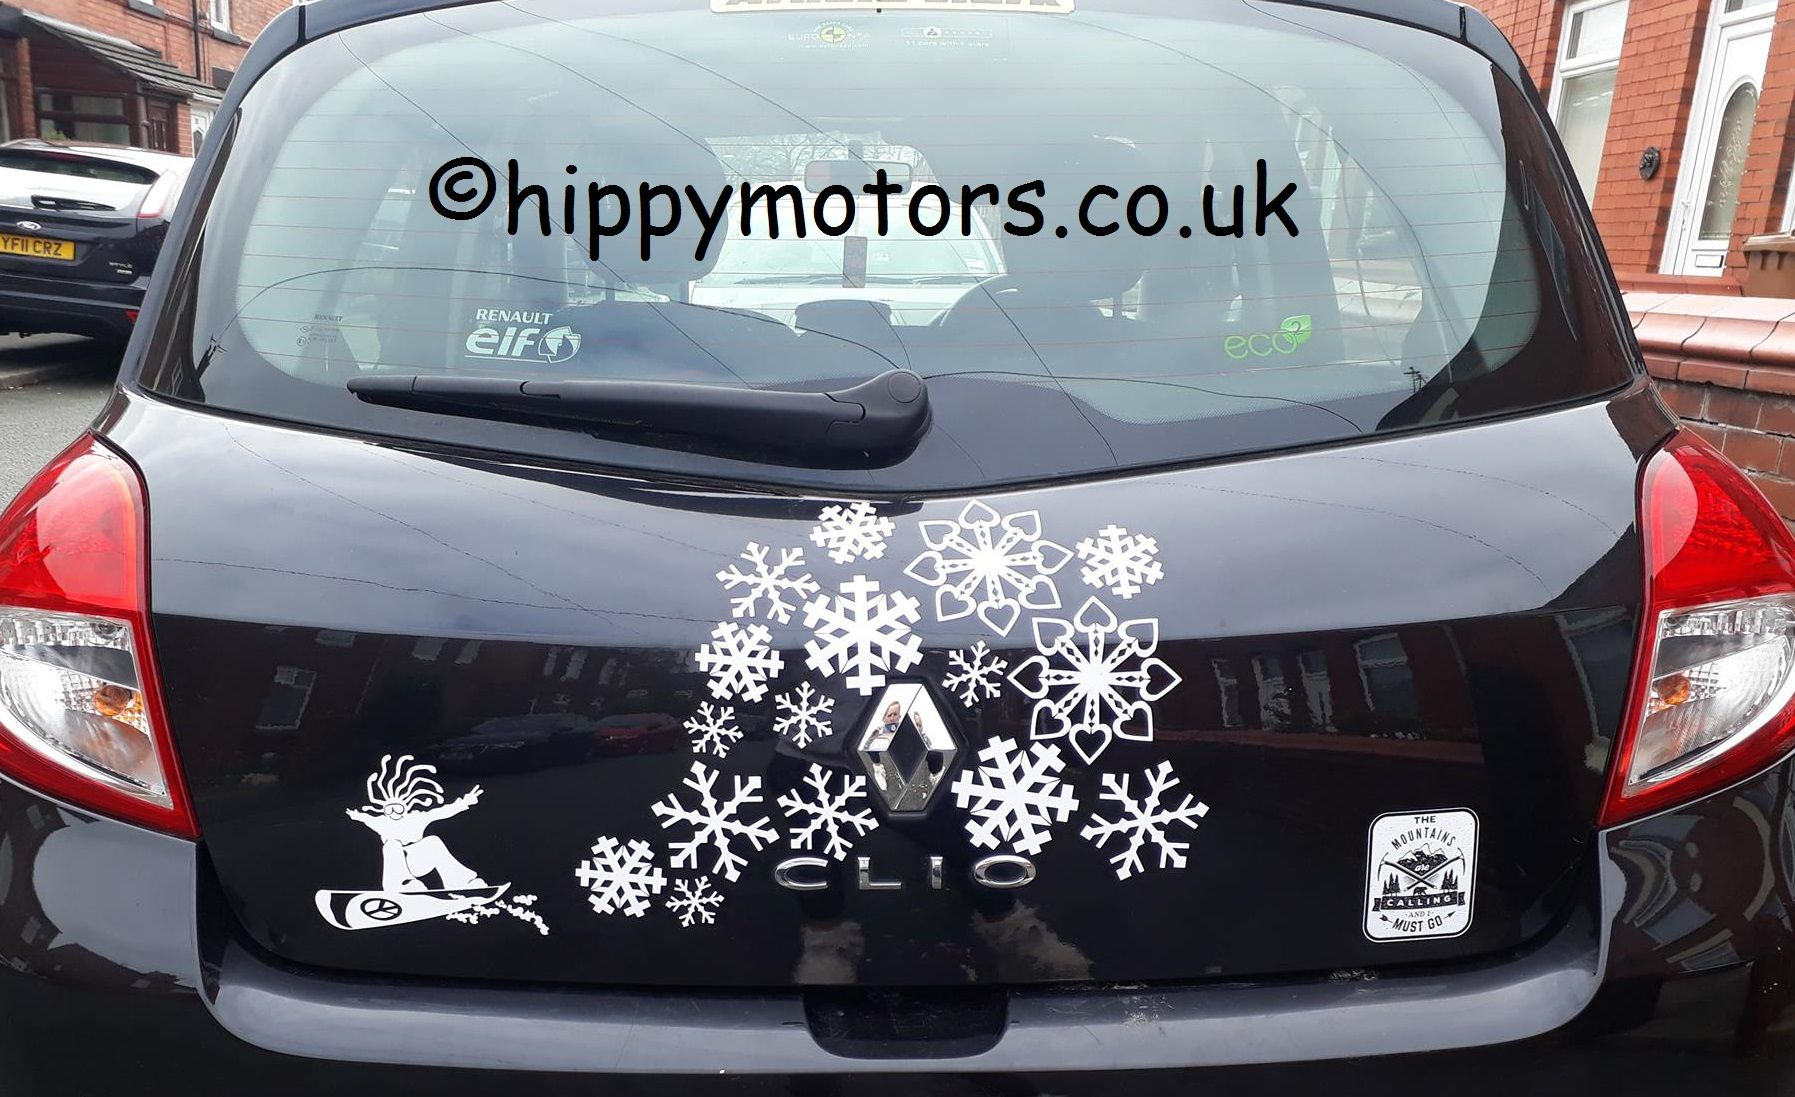 Snow Boarder Vinyl Hippy Dude Sticker For Vehicles And Snowboards Funny Bumper Stickers Snowflake Sticker Vinyl Car Stickers [ 1097 x 1795 Pixel ]